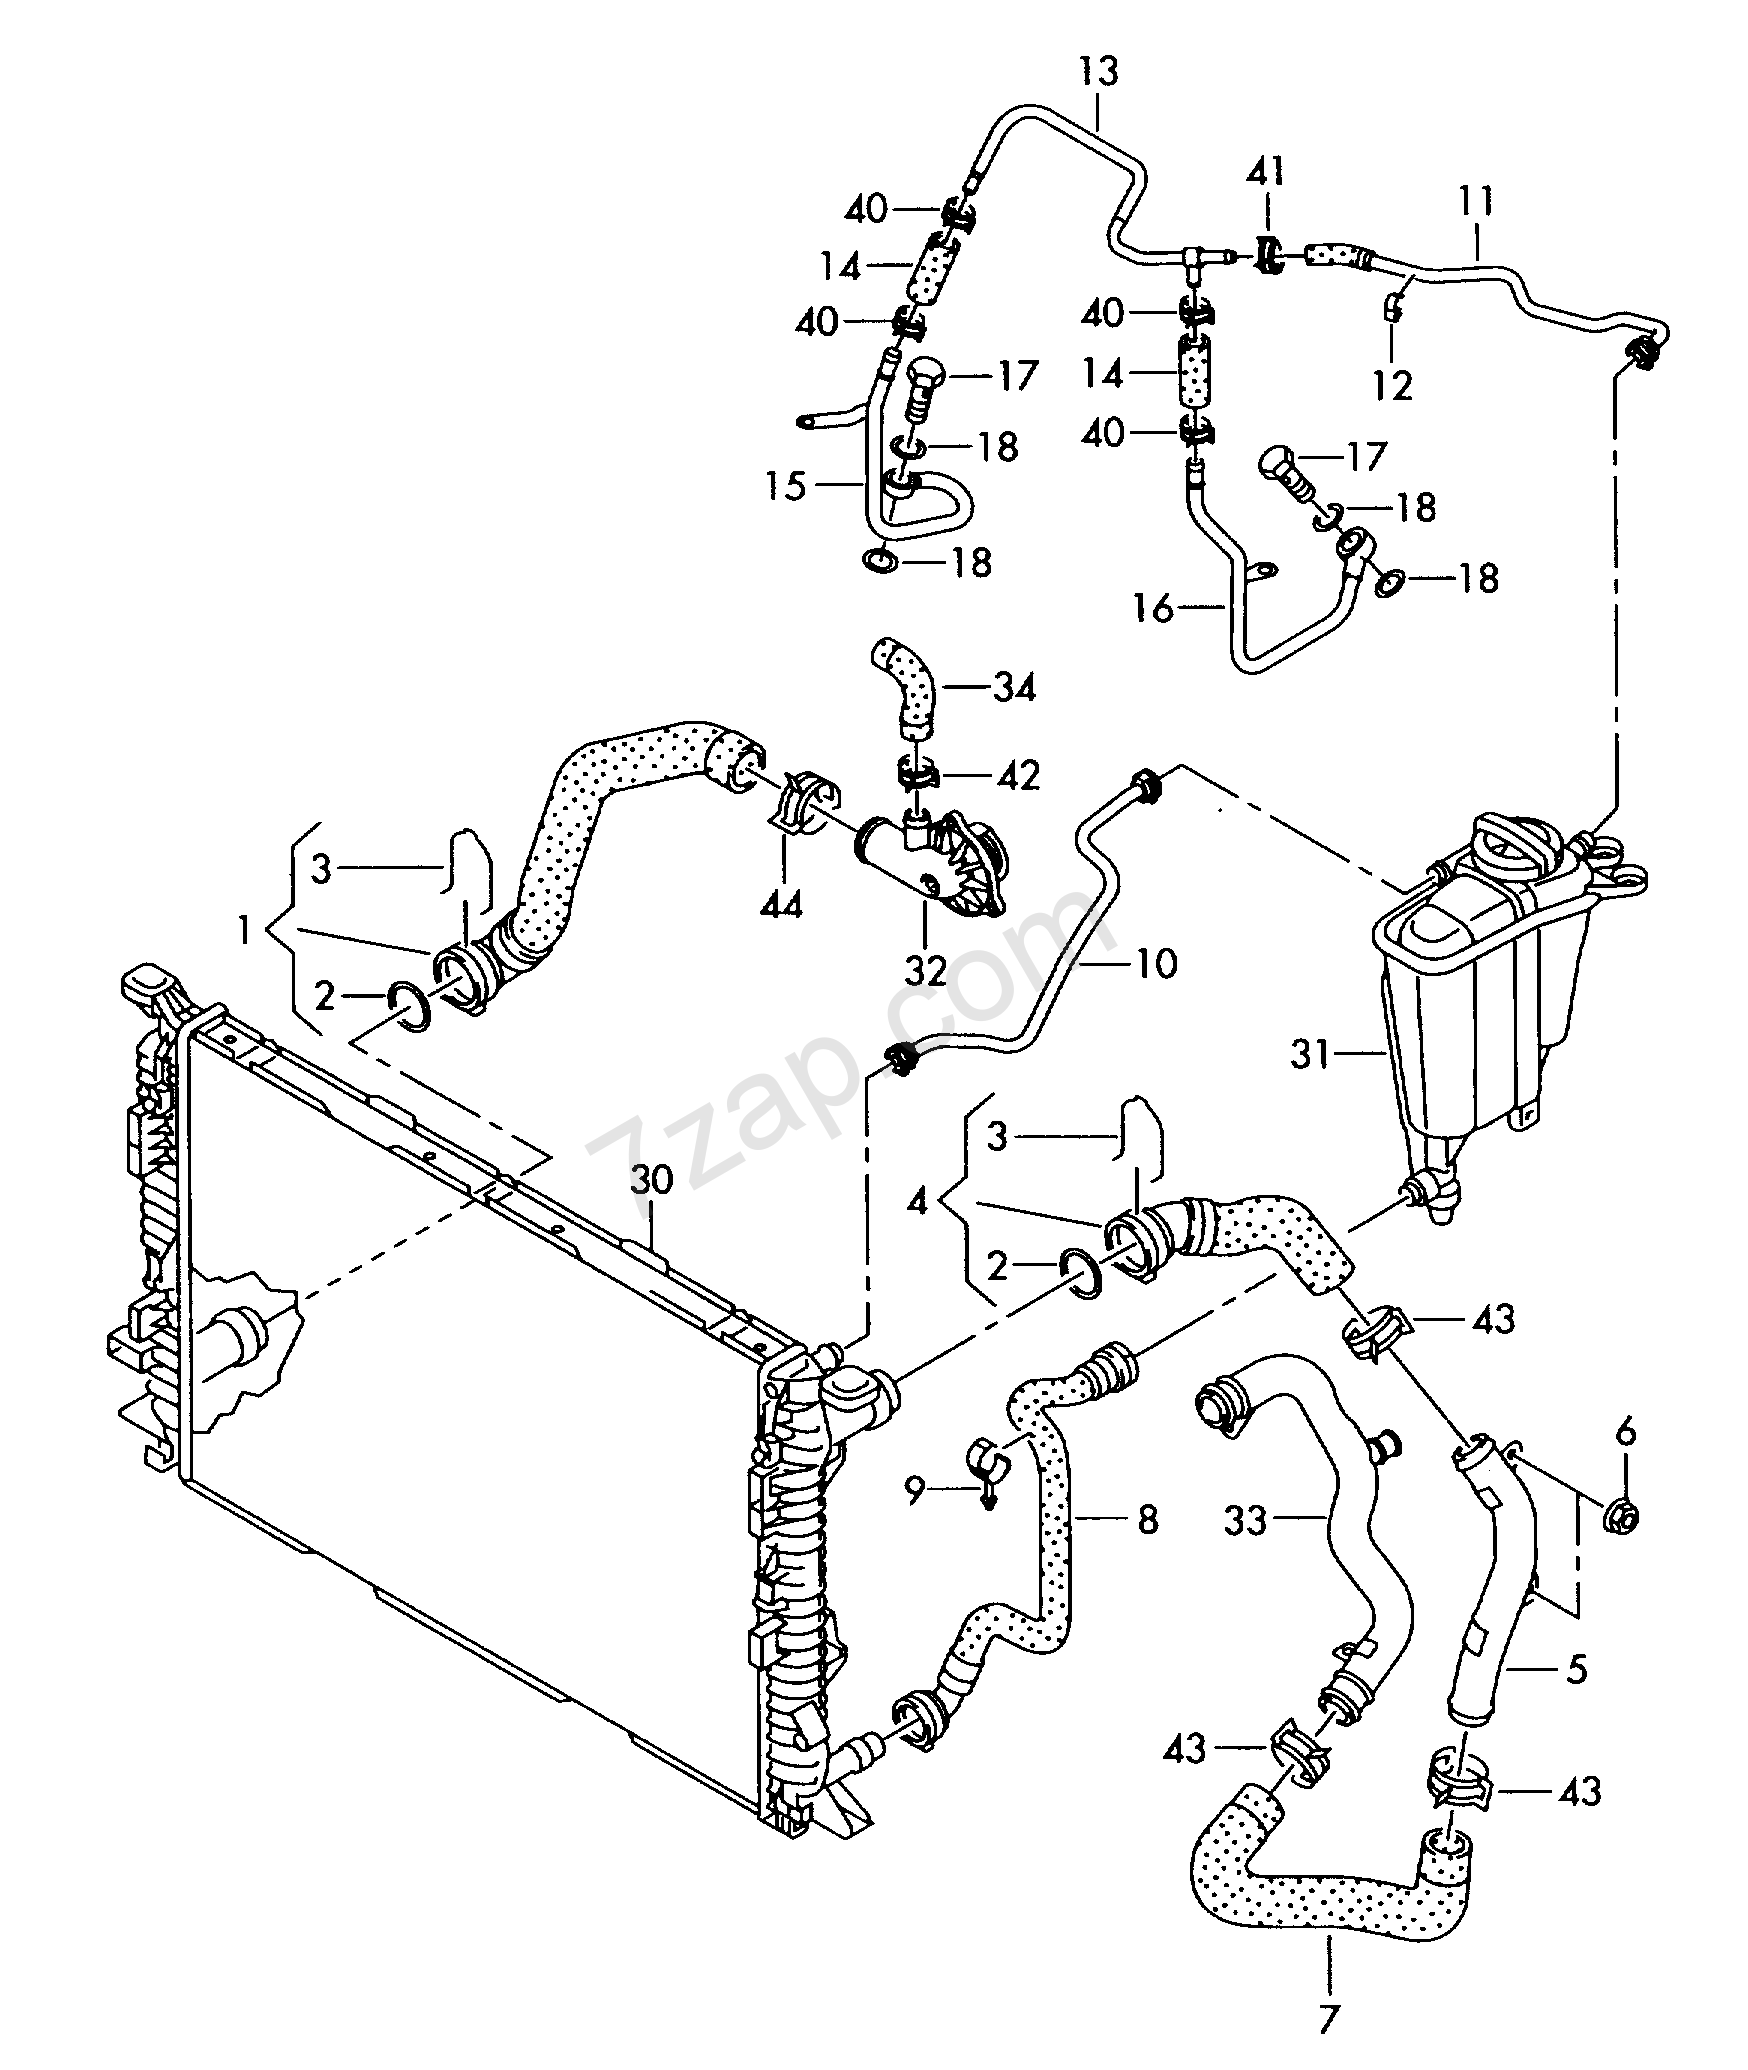 audi a4 cooling system diagram electricity site 2015 Audi A6 Avant USA coolant cooling system audi a4 avant a4 2011 year audi usa 121055